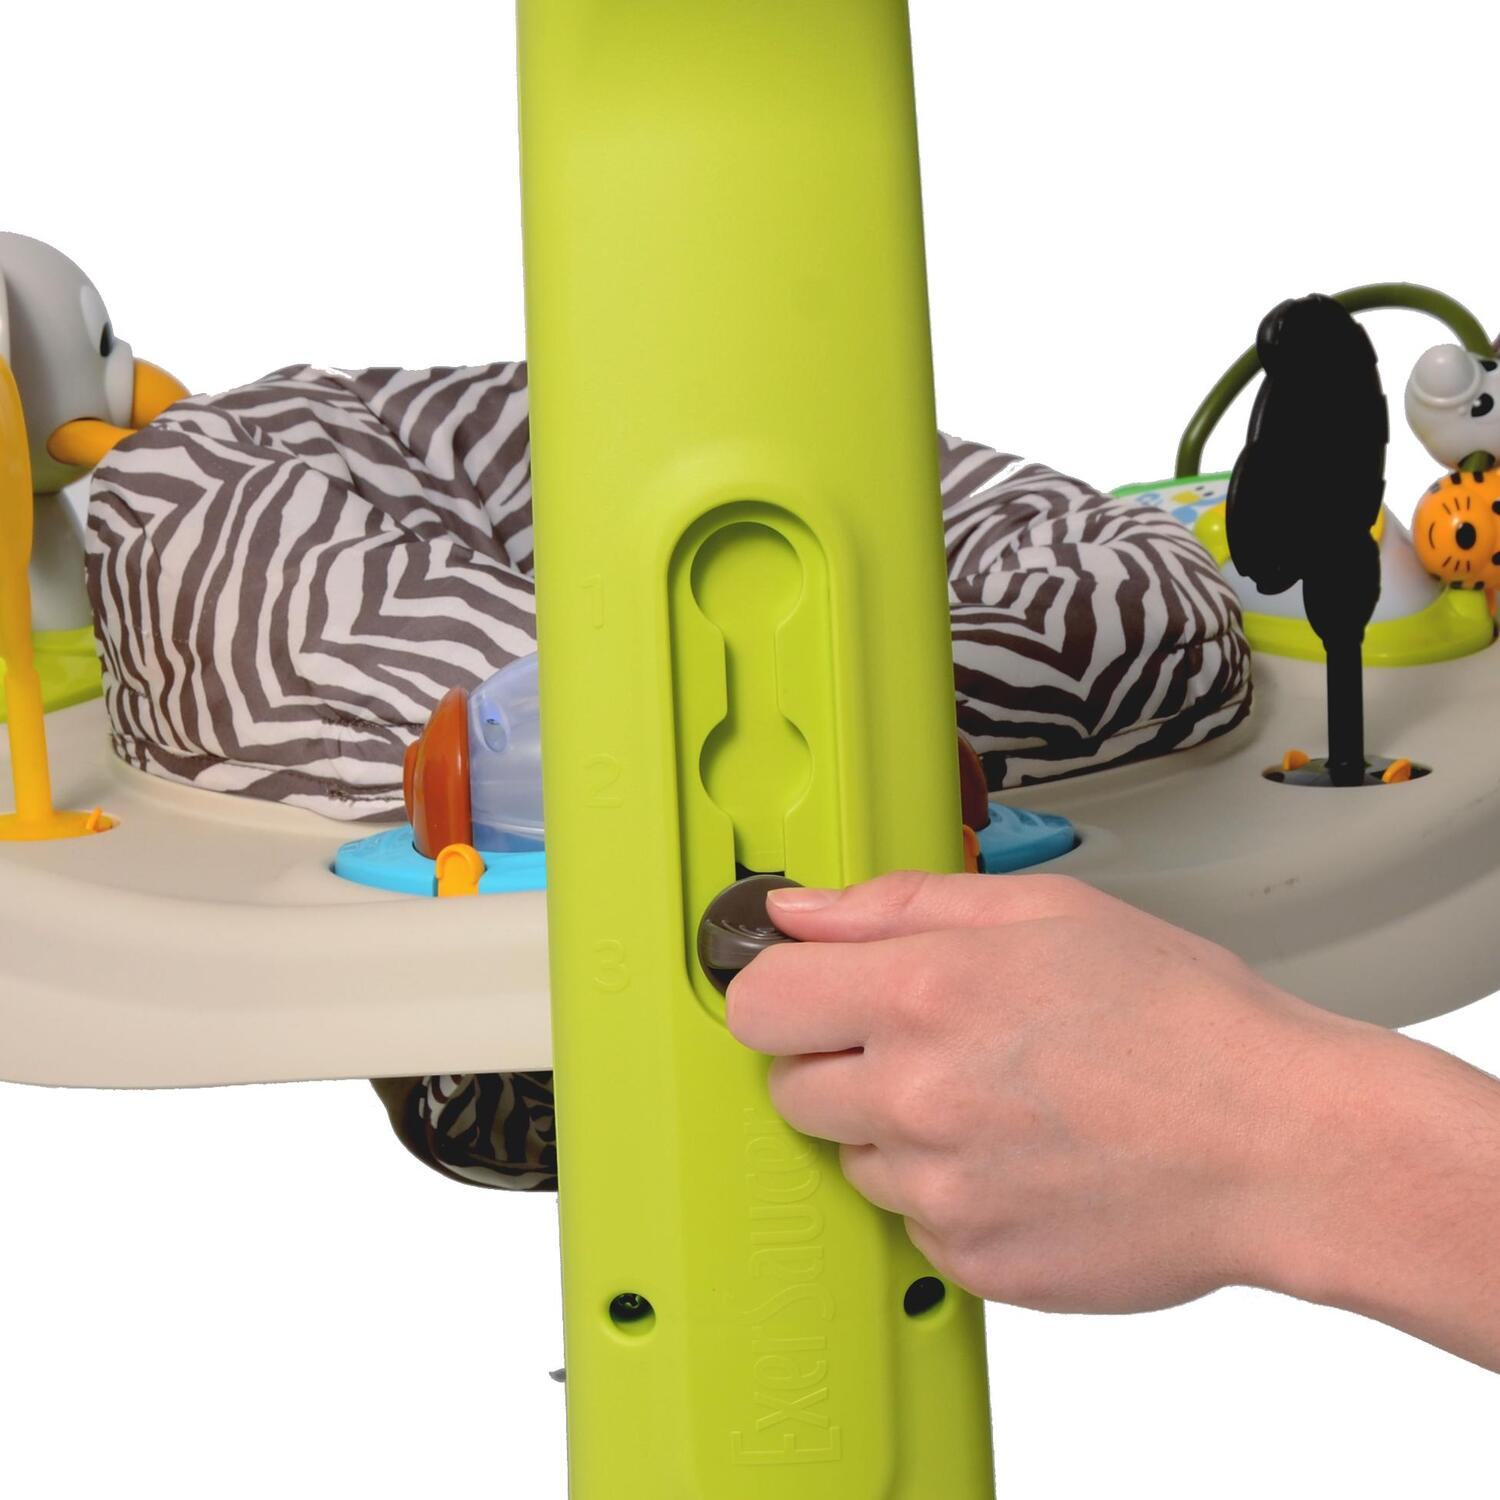 Evenflo exersaucer jump and learn stationary jumper reviews